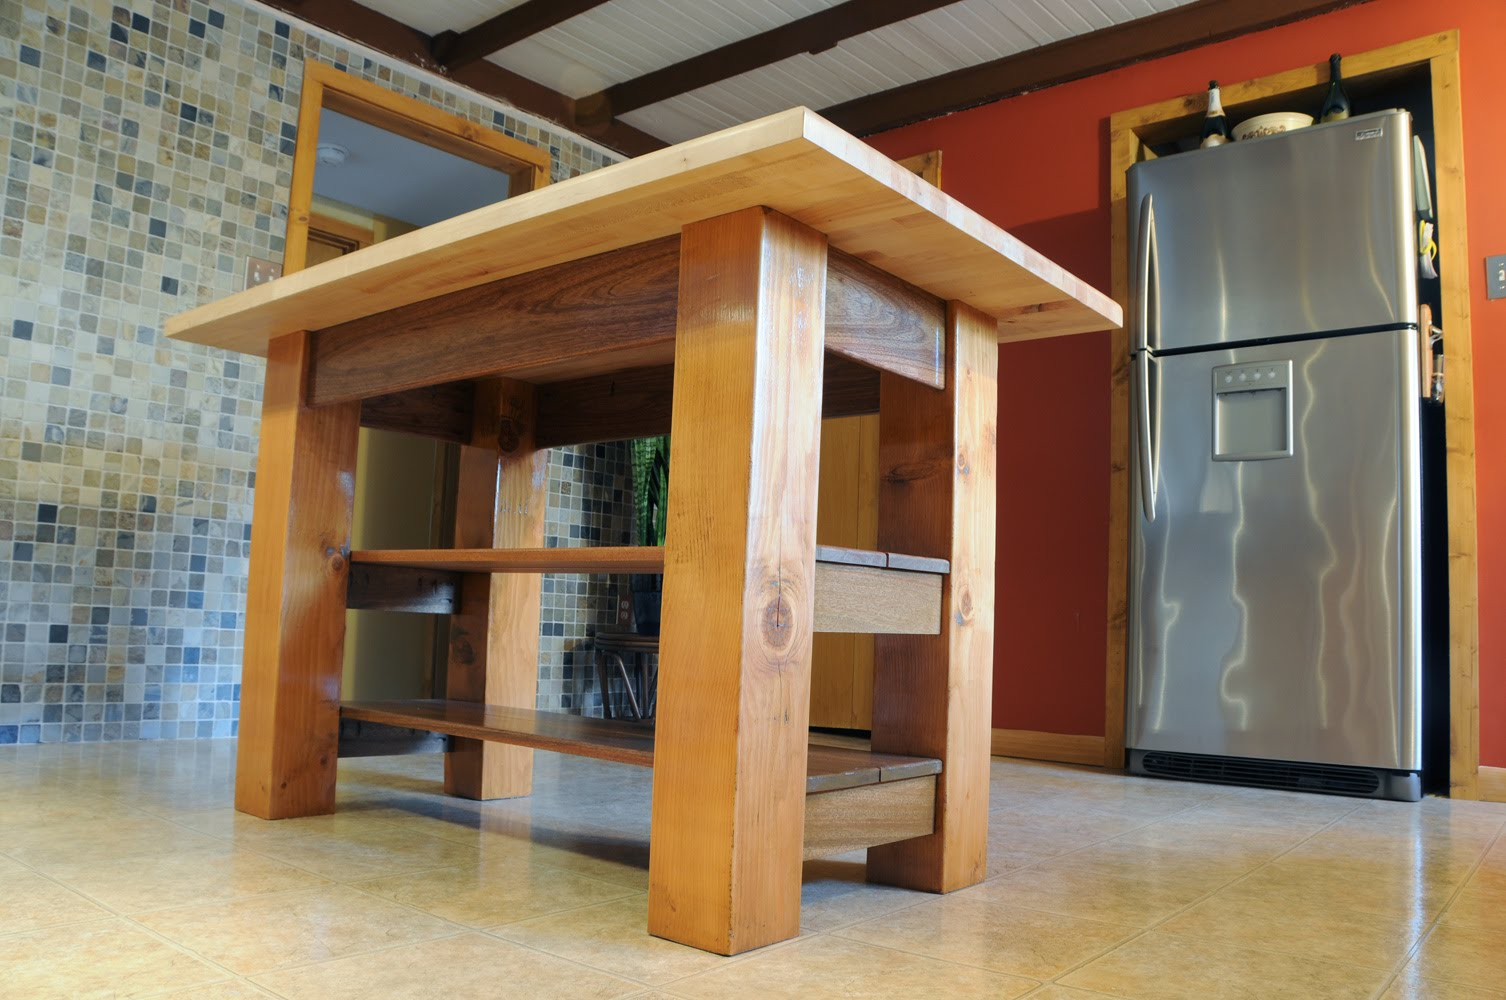 Diy Kitchen Island Design Plans Brian Pistone 39s Daily Pictures Kitchen Island Finished